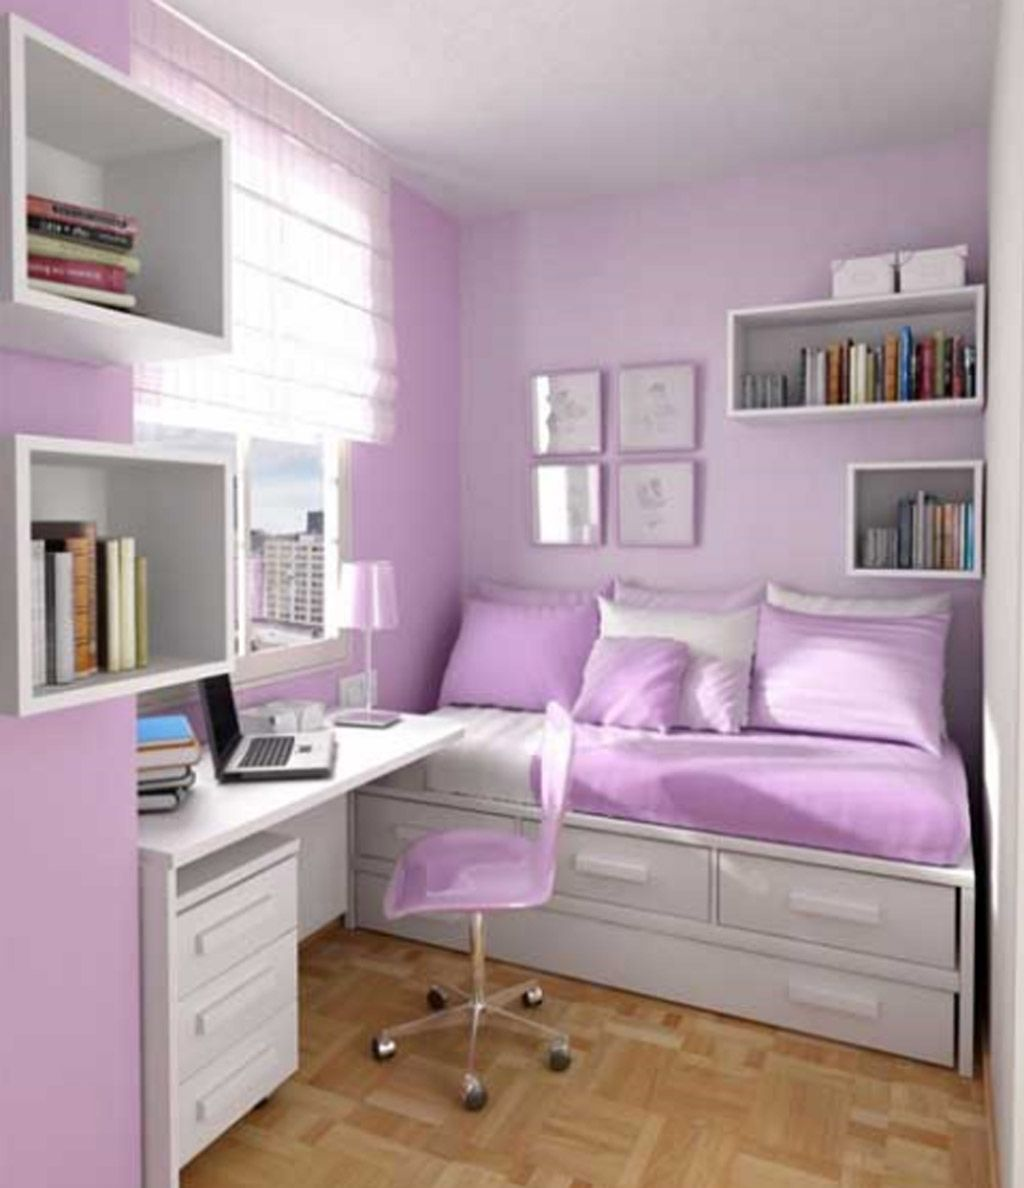 Bedrooms for girls teenagers ideas - Cute Bedroom Ideas For Teenage Girls Best Interior Design Blogs Fashion Pinterest